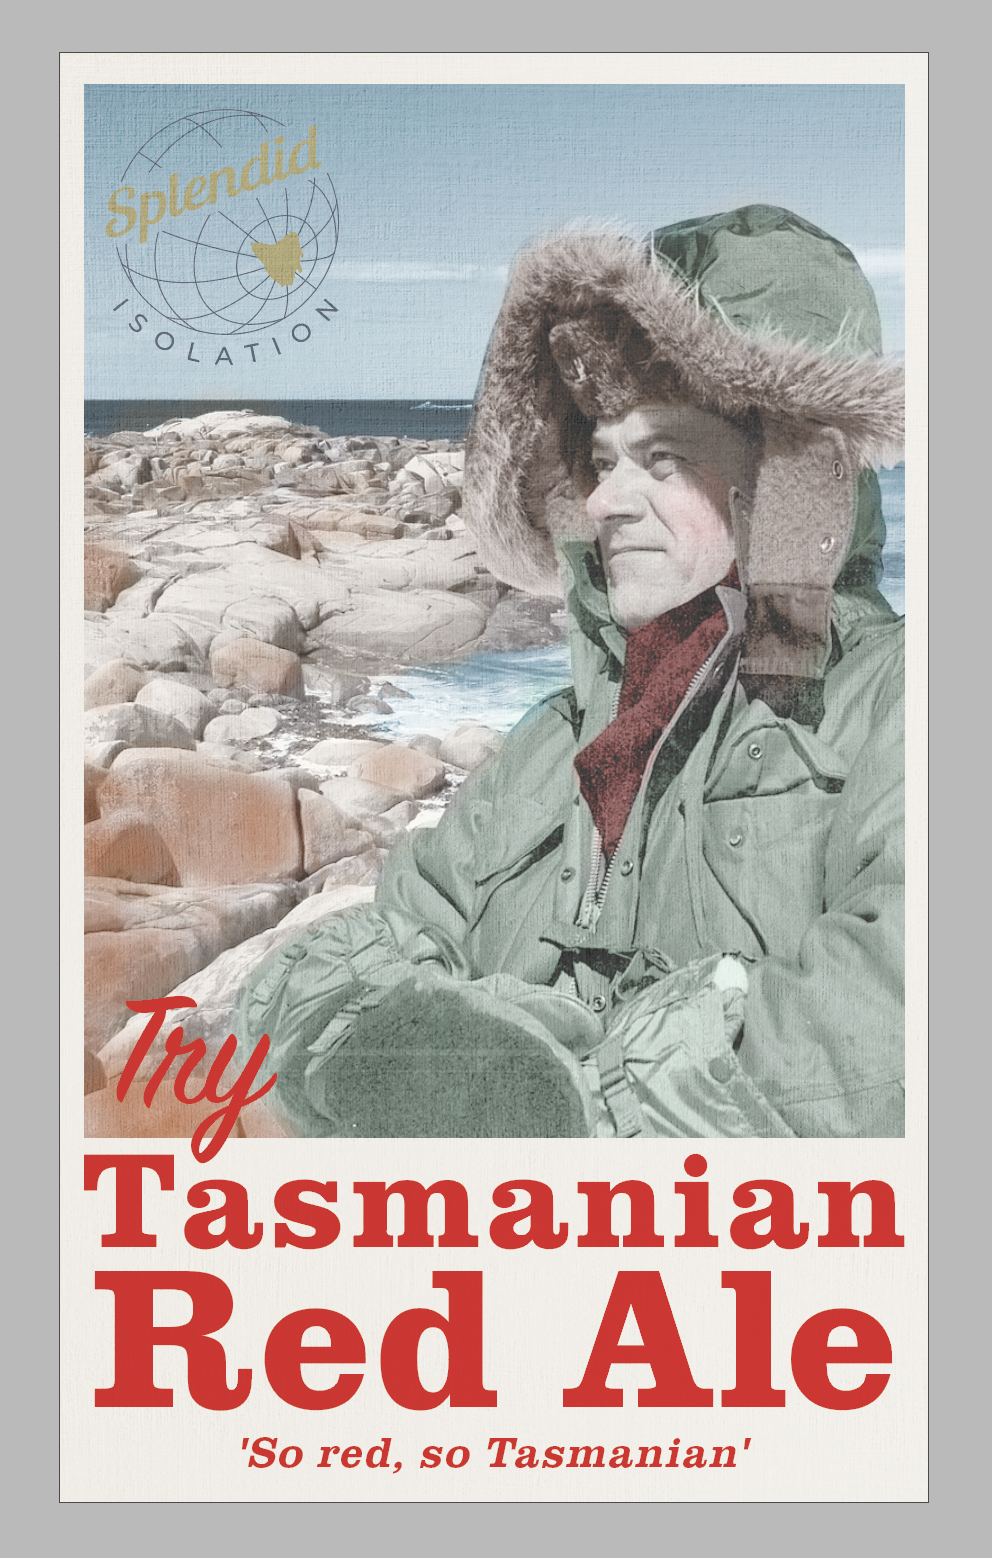 Tasmanian Red Ale — Splendid Isolation, craft beer from Hobart, Tasmanai